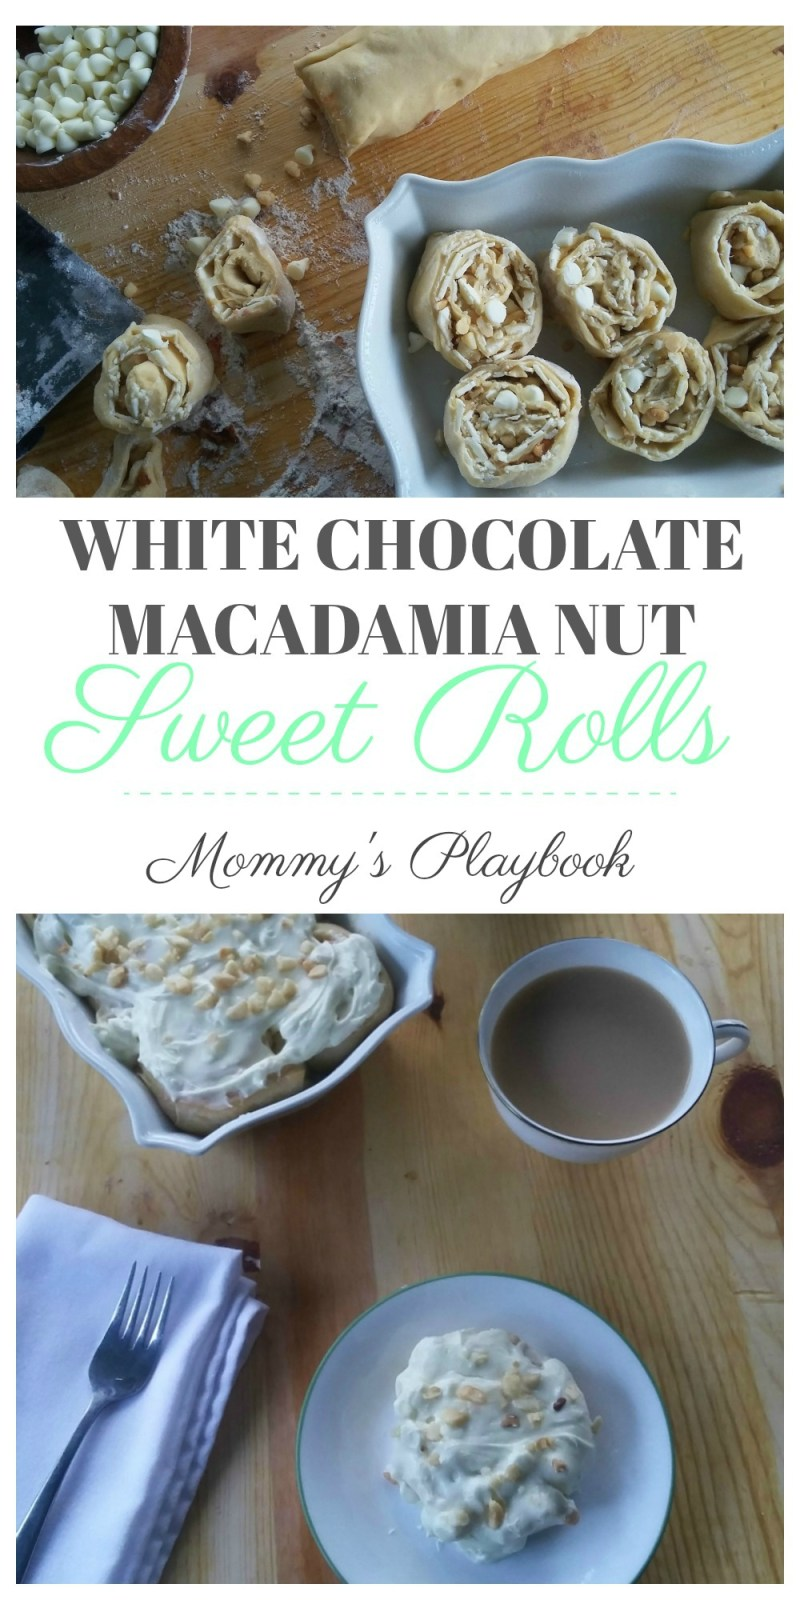 White Chocolate Macadamia Nut Sweet Roll Recipe #SweetRoll #MacadamiaNut #CookieSwap